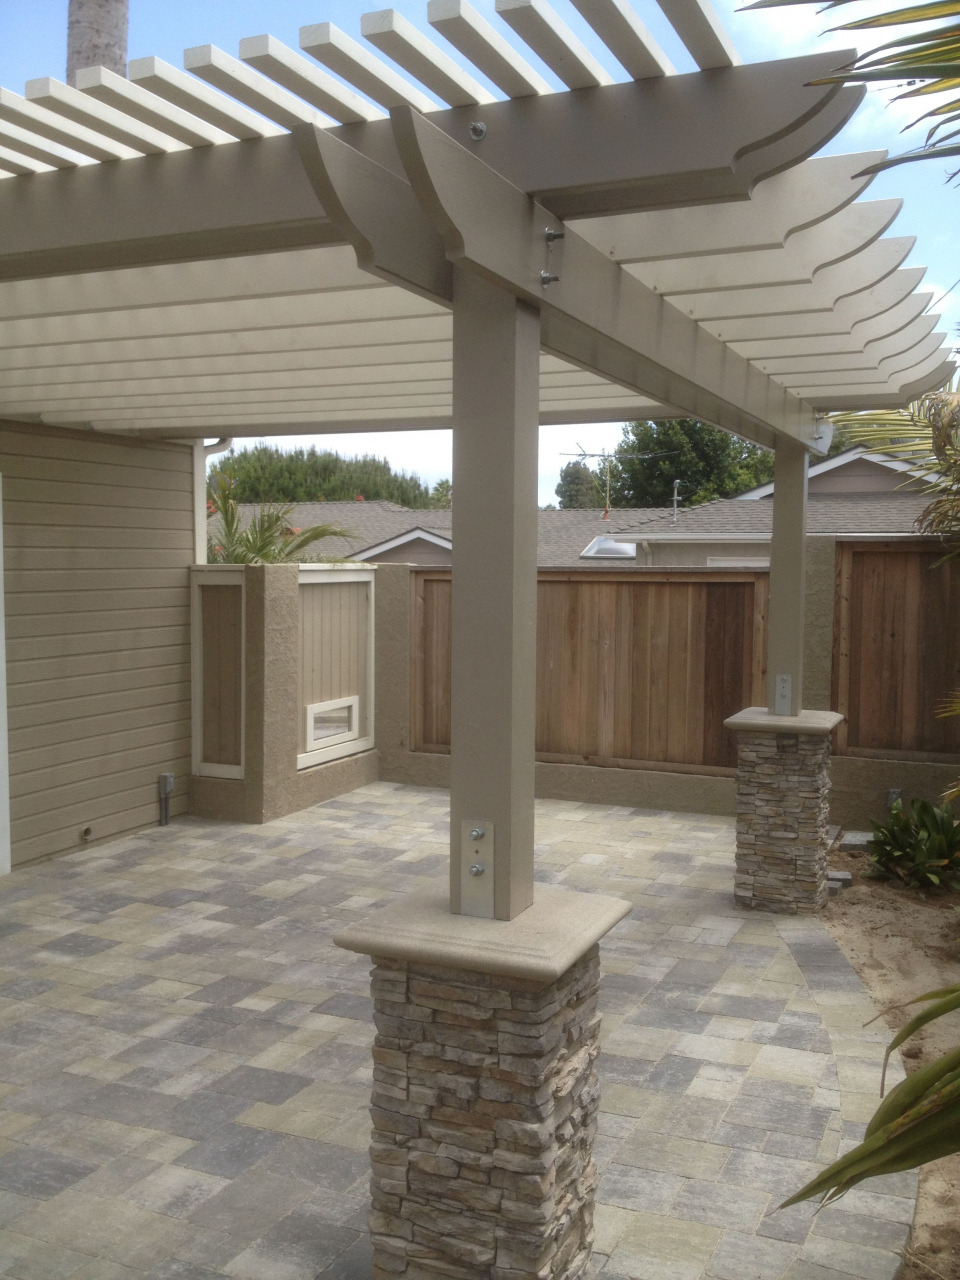 how to build patio roof attached to house new patio with pergola we used angelus pavers in this design durch how to build patio roof attached to house